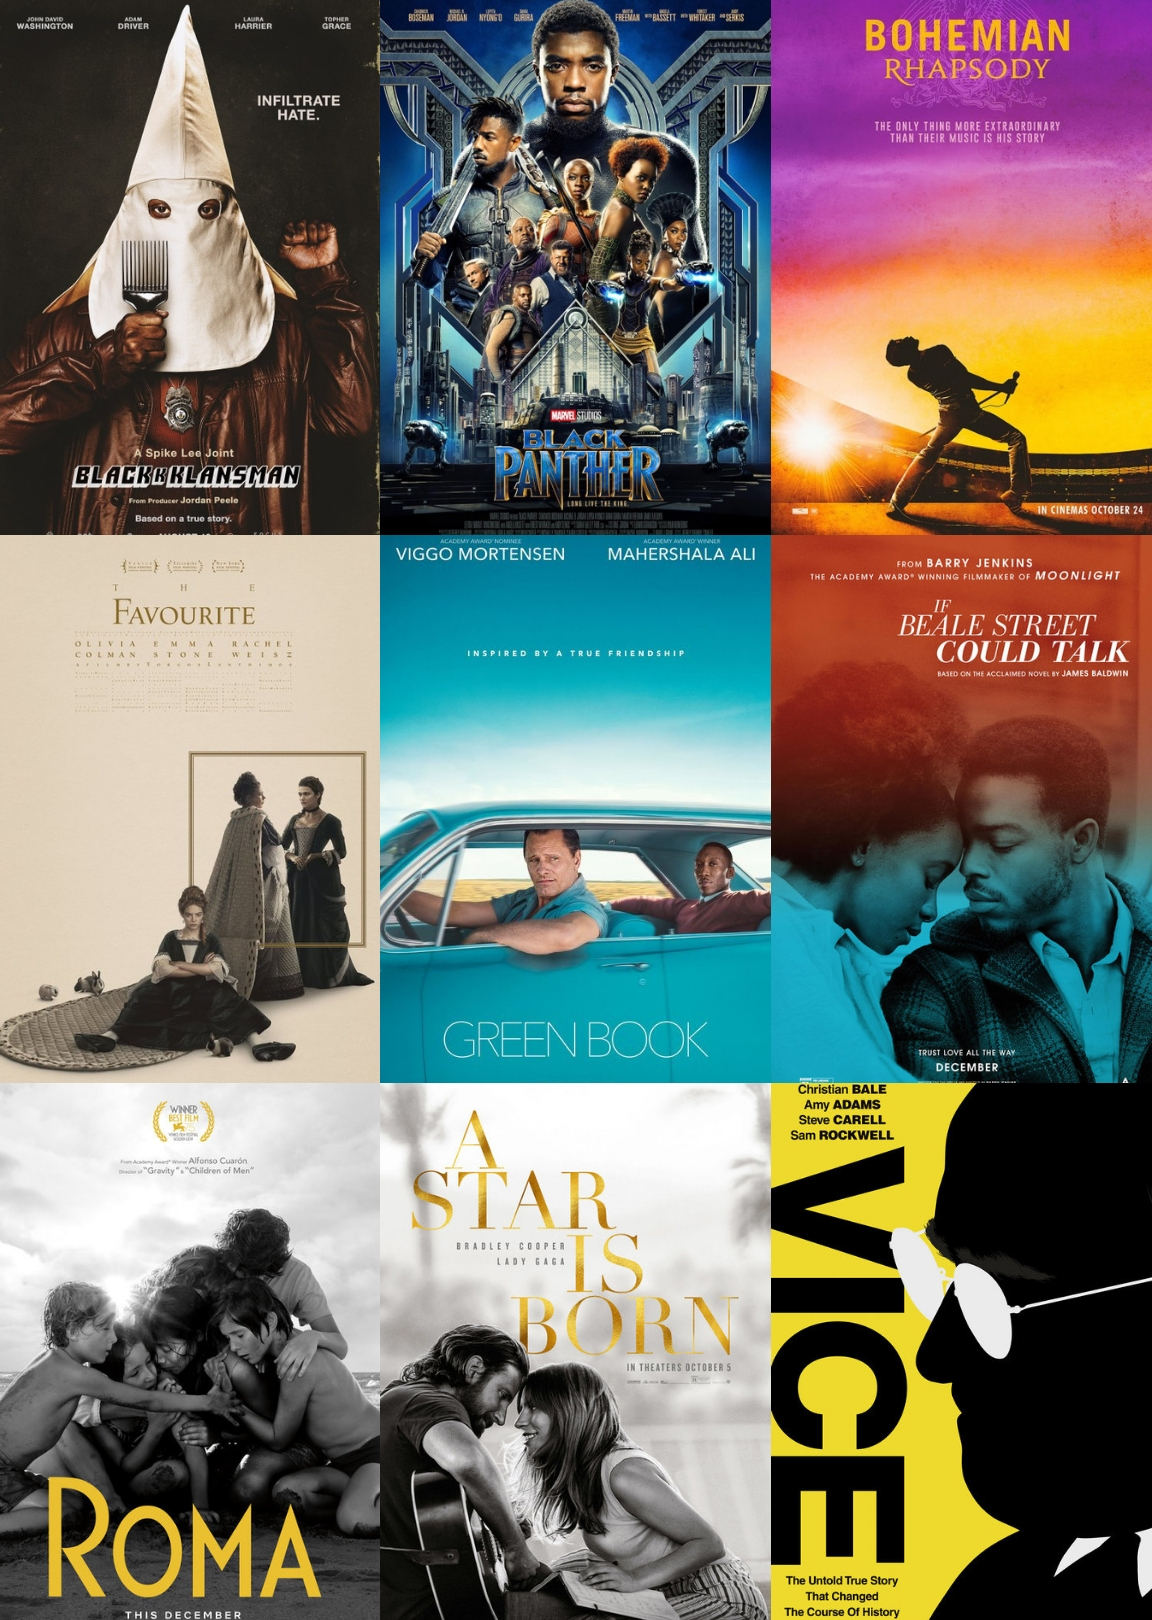 Who Will Be There: - For one reason or another, it seems like this year's Best Picture nominations might be the easiest to predict. There are eight movies that will definitely be there, and one that probably will (Bohemian Rhapsody). A Star Is Born, Roma, Green Book, and The Favourite seem to be the clear frontrunners, with Black Panther, BlacKkKlansman, and Vice following close behind. I do think If Beale Street Could Talk will be recognized as well, but it seems to be a much quieter campaign than Barry Jenkins' last film, 2016 Best Picture winner, Moonlight. I gave my last spot to Bohemian Rhapsody, though it's the pick I'm least confident about. After its surprising win at the Globes, Bohemian Rhapsody has a better shot than ever at a coveted Oscar nom, but its poor critical reception could still hurt its chances.